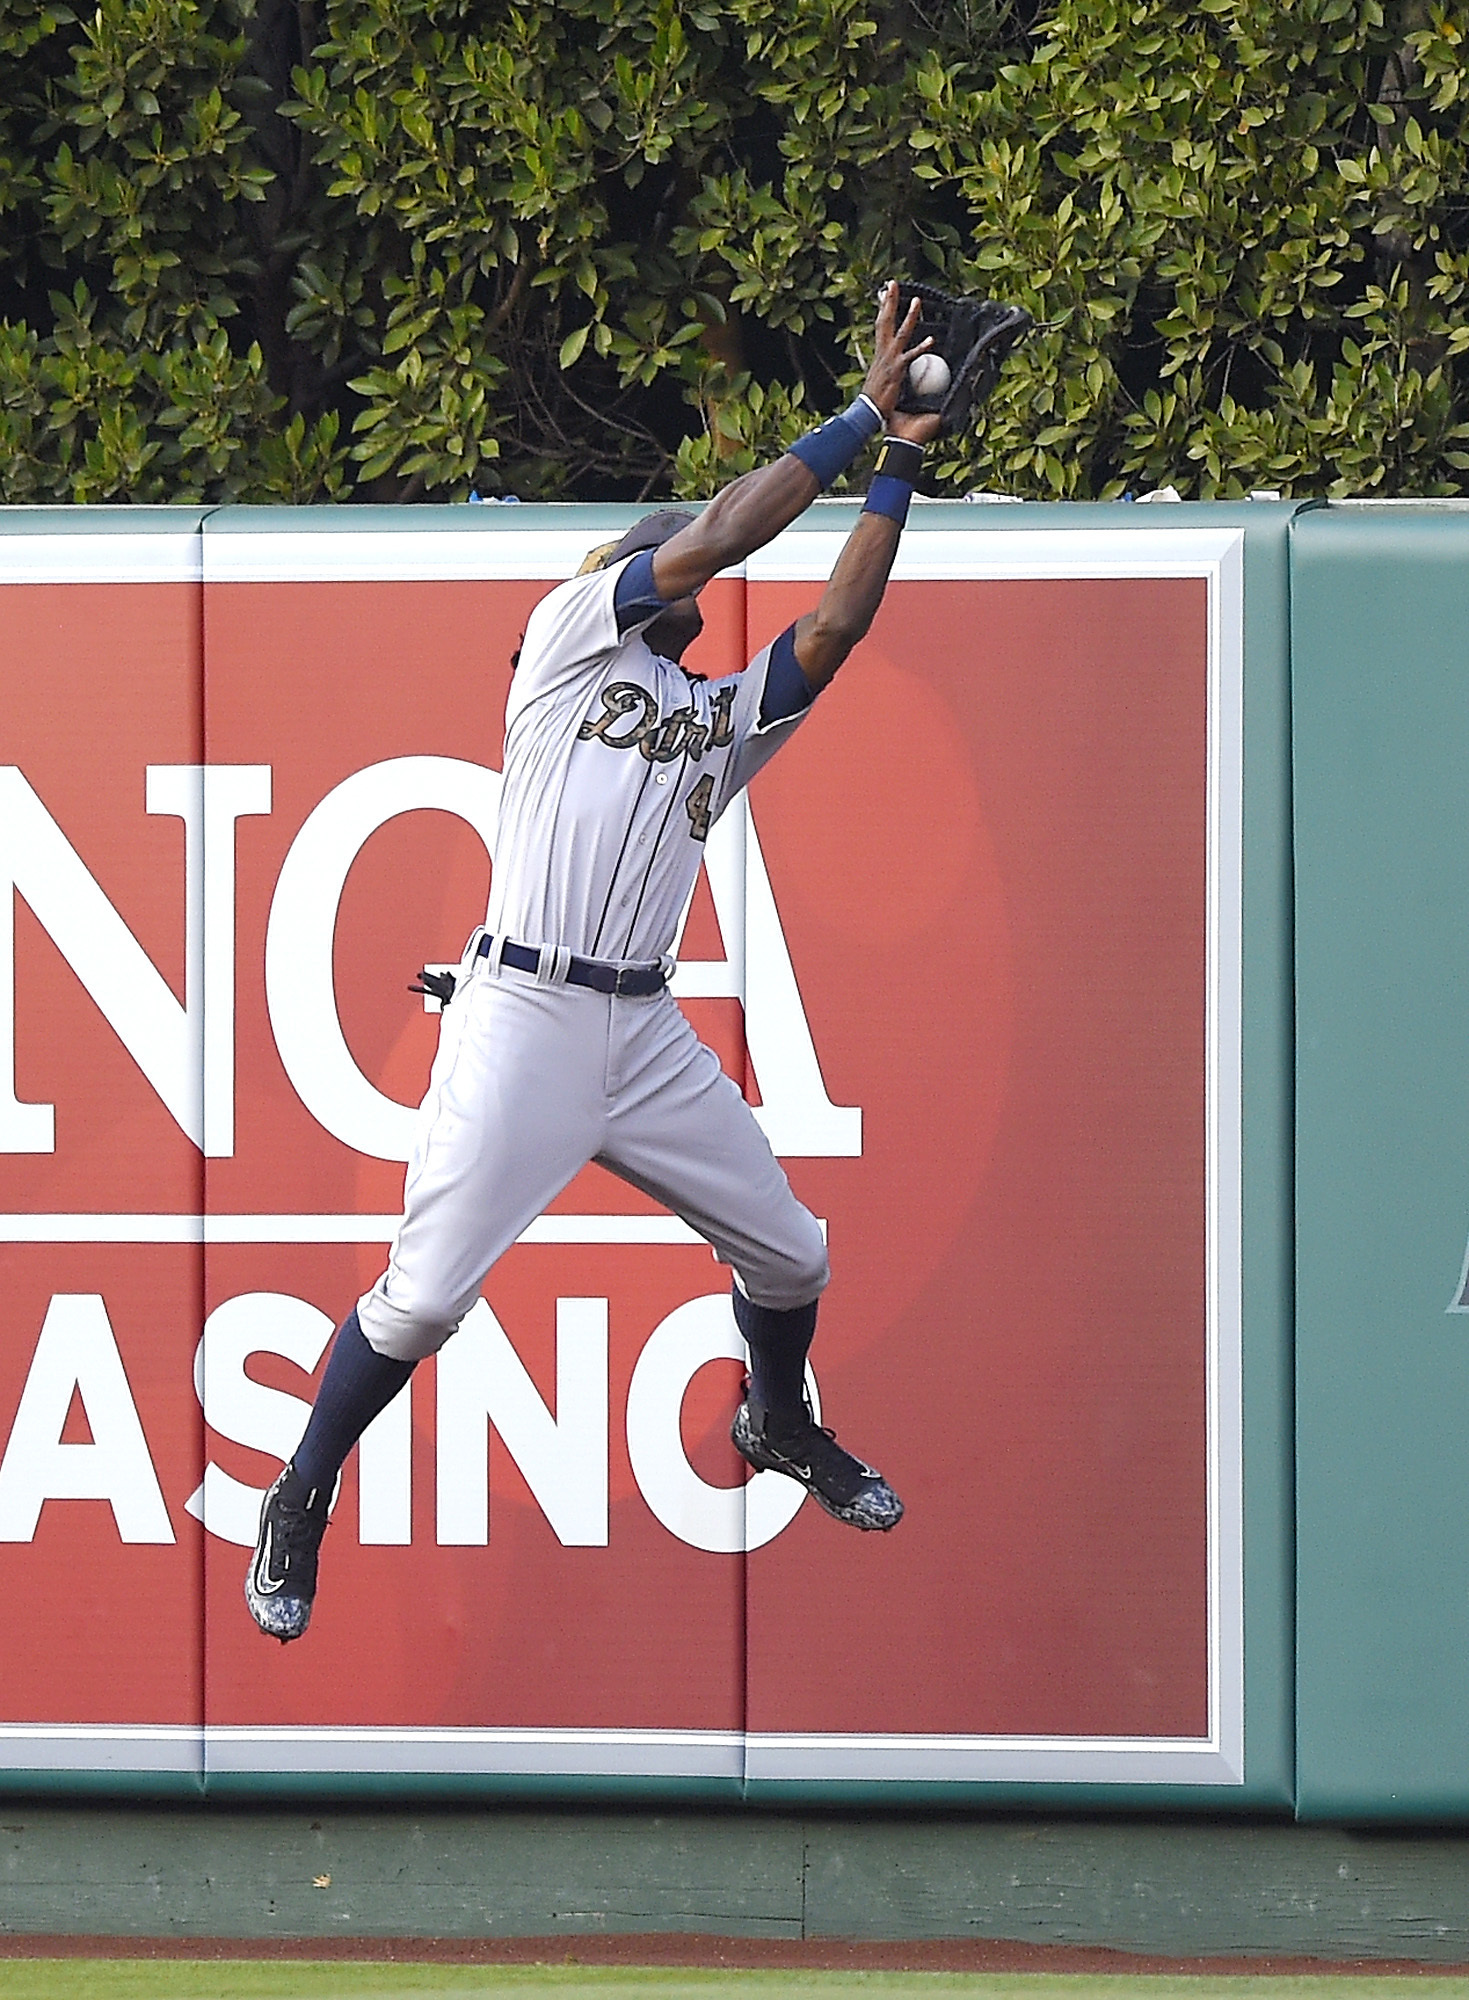 Detroit Tigers center fielder Cameron Maybin makes a catch on a ball hit by Los Angeles Angels' Kole Calhoun during the fifth inning of a baseball game, Monday, May 30, 2016, in Anaheim, Calif. (AP Photo/Mark J. Terrill)